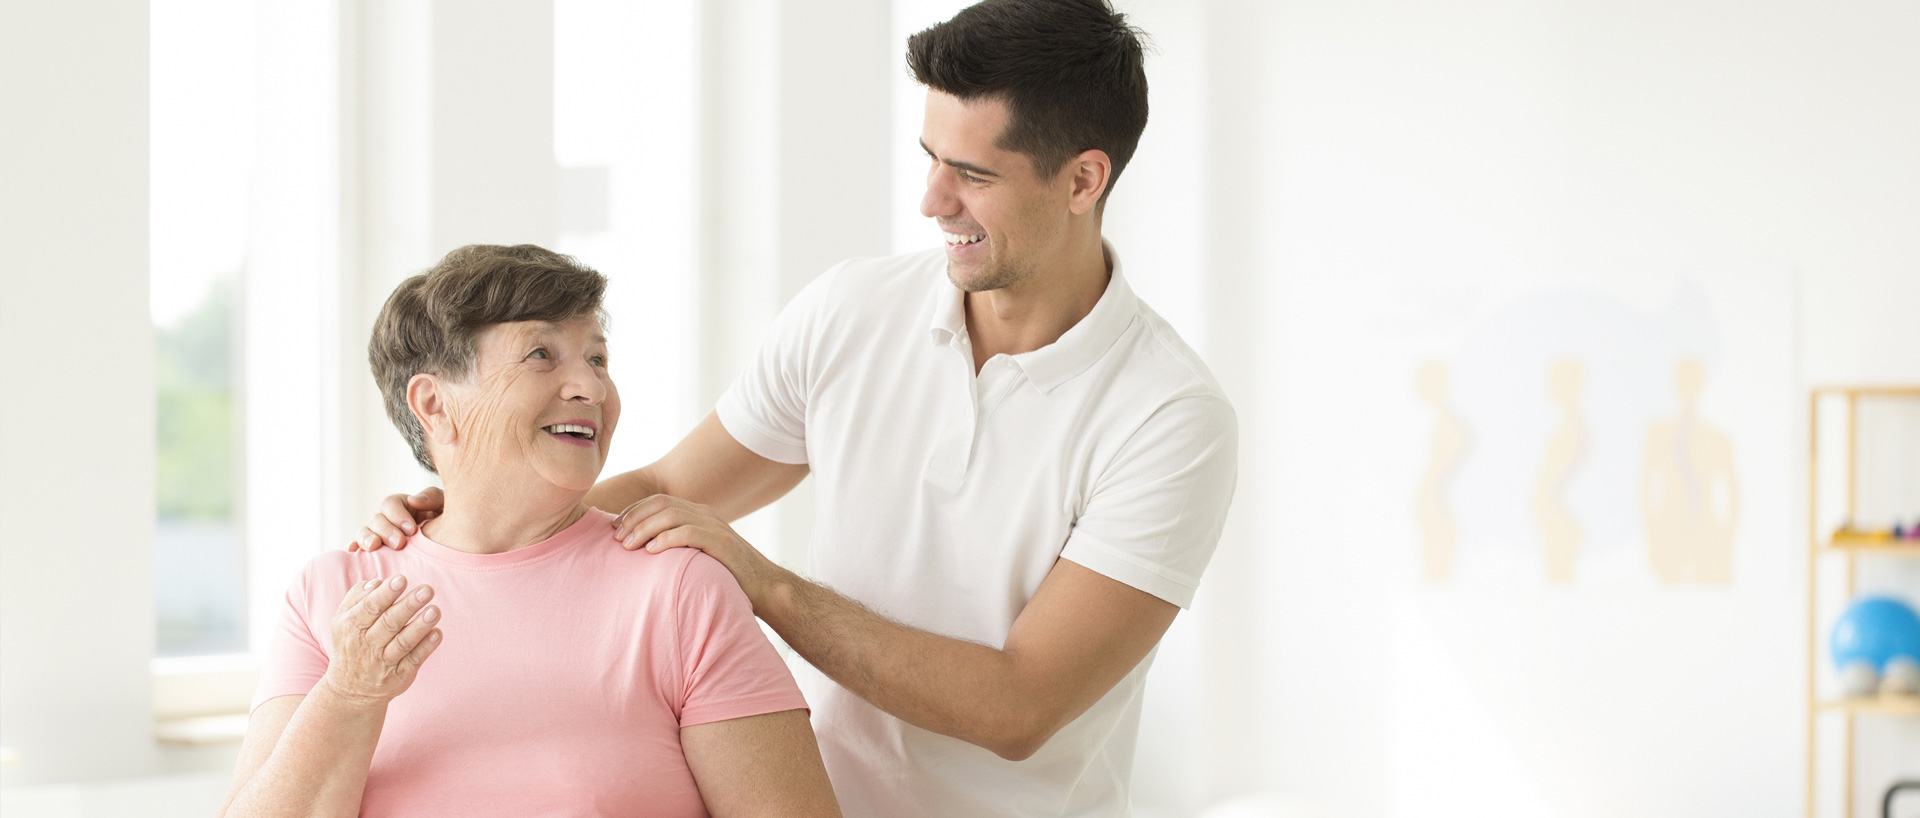 Physical Therapy Services - Raleigh, NC | FYZICAL Therapy & Balance